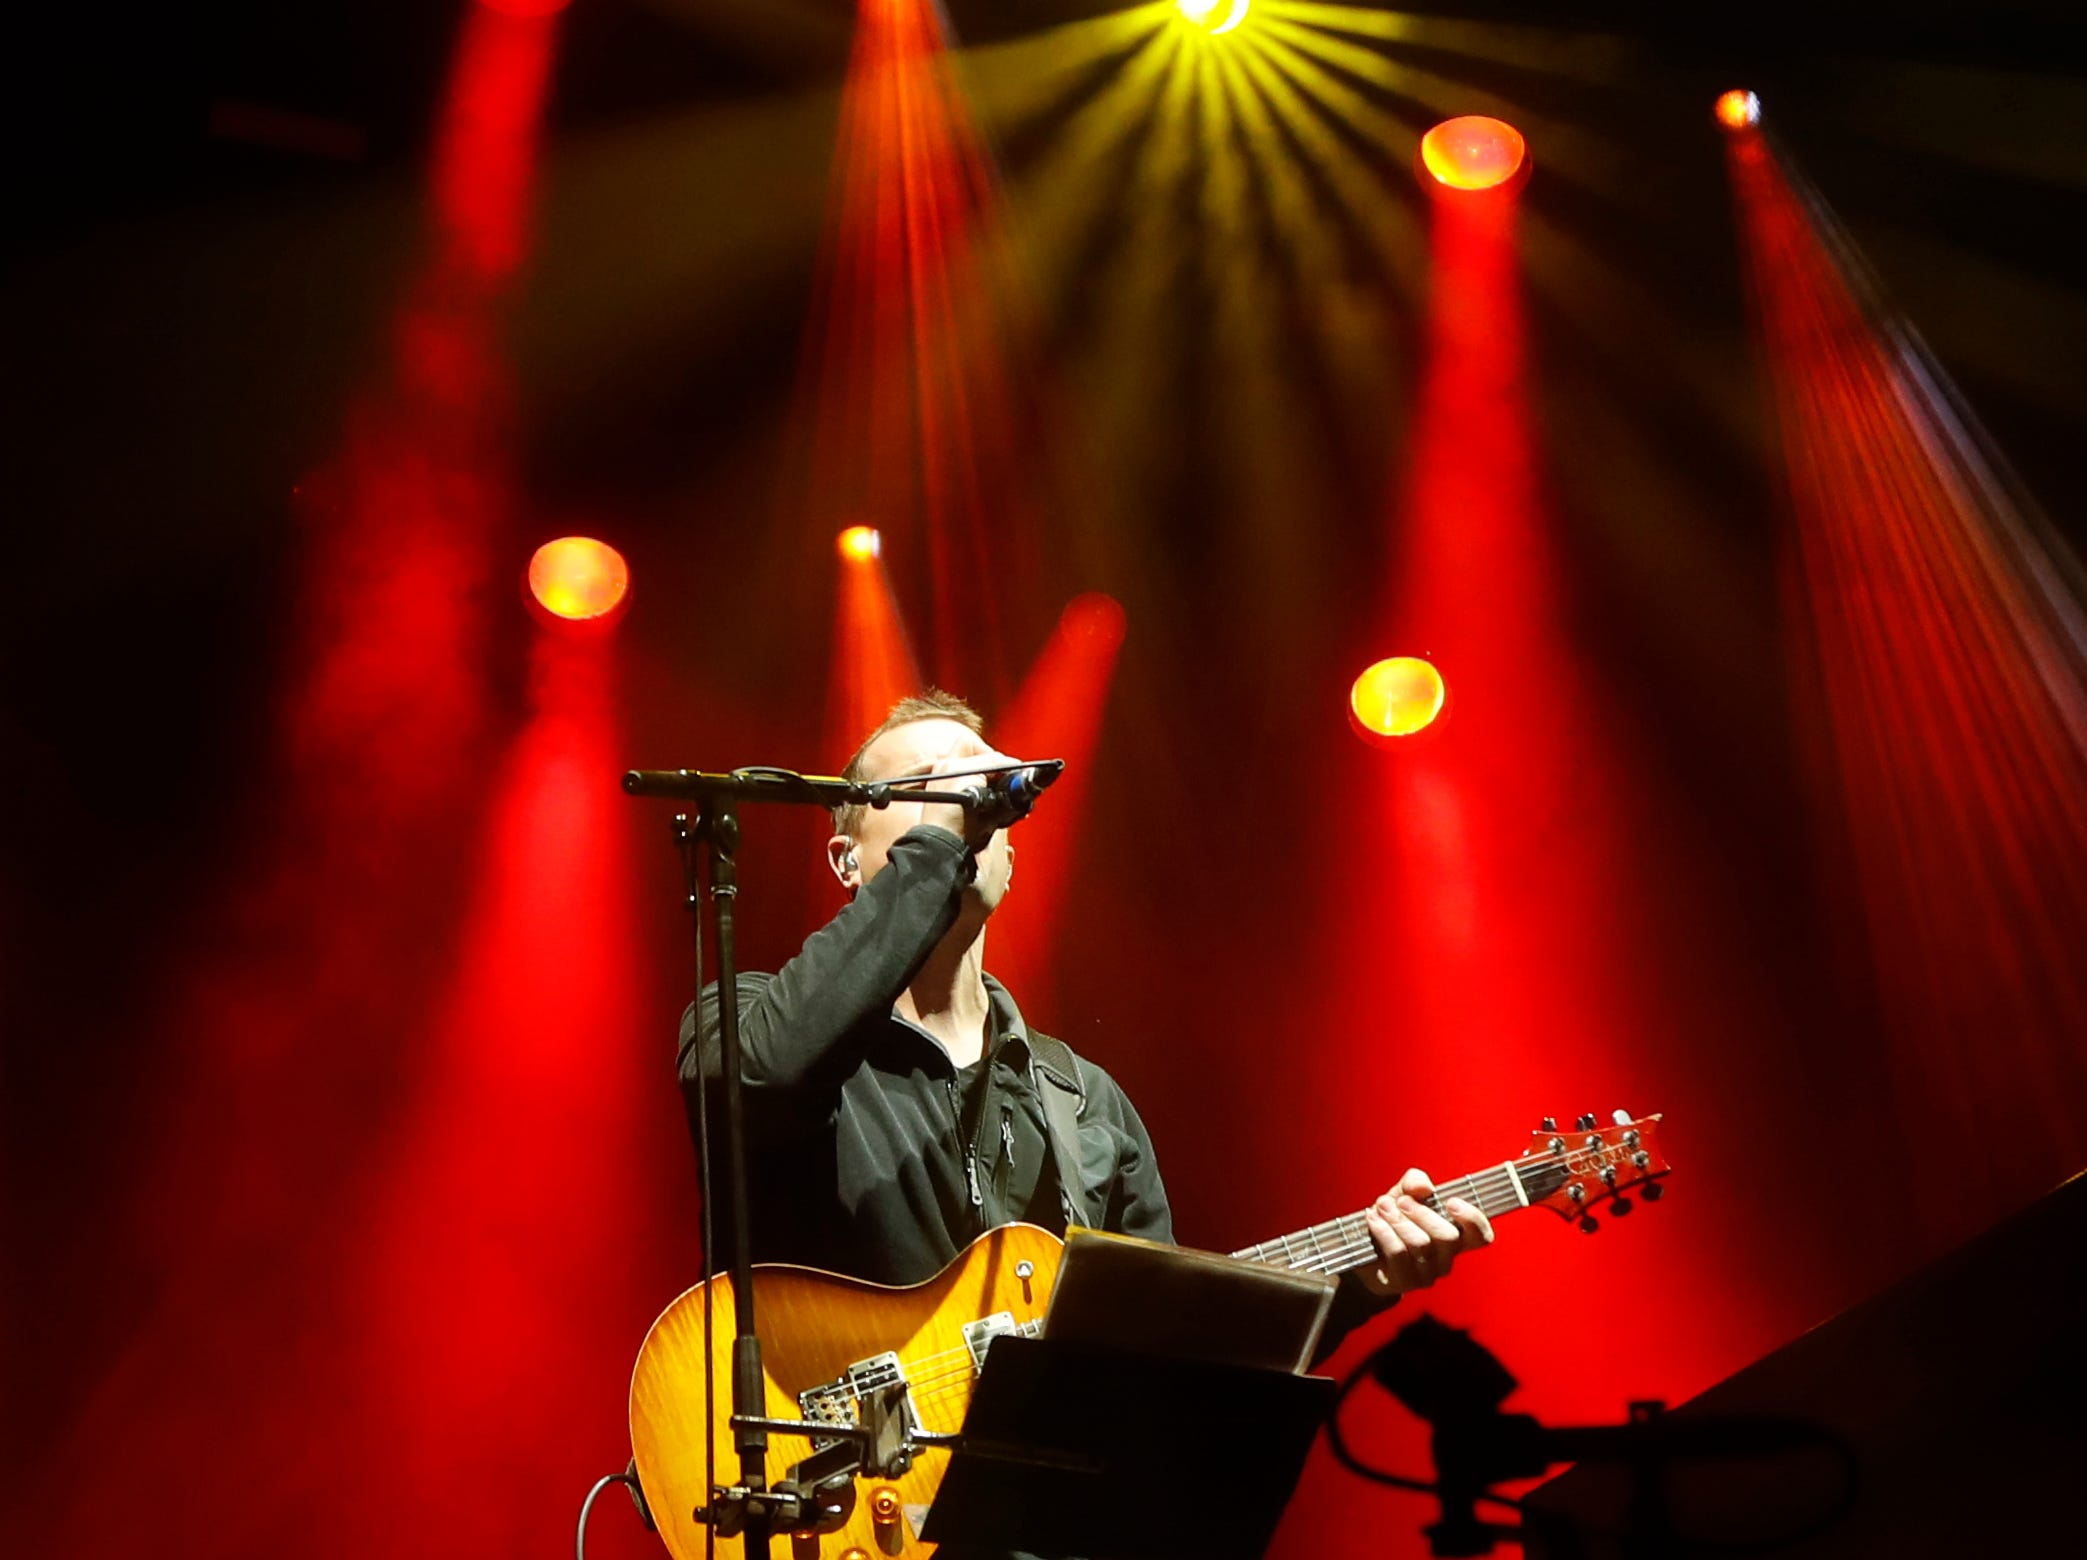 Umphrey's McGee performs during McDowell Mountain Music Festival in Phoenix on March 3, 2019.